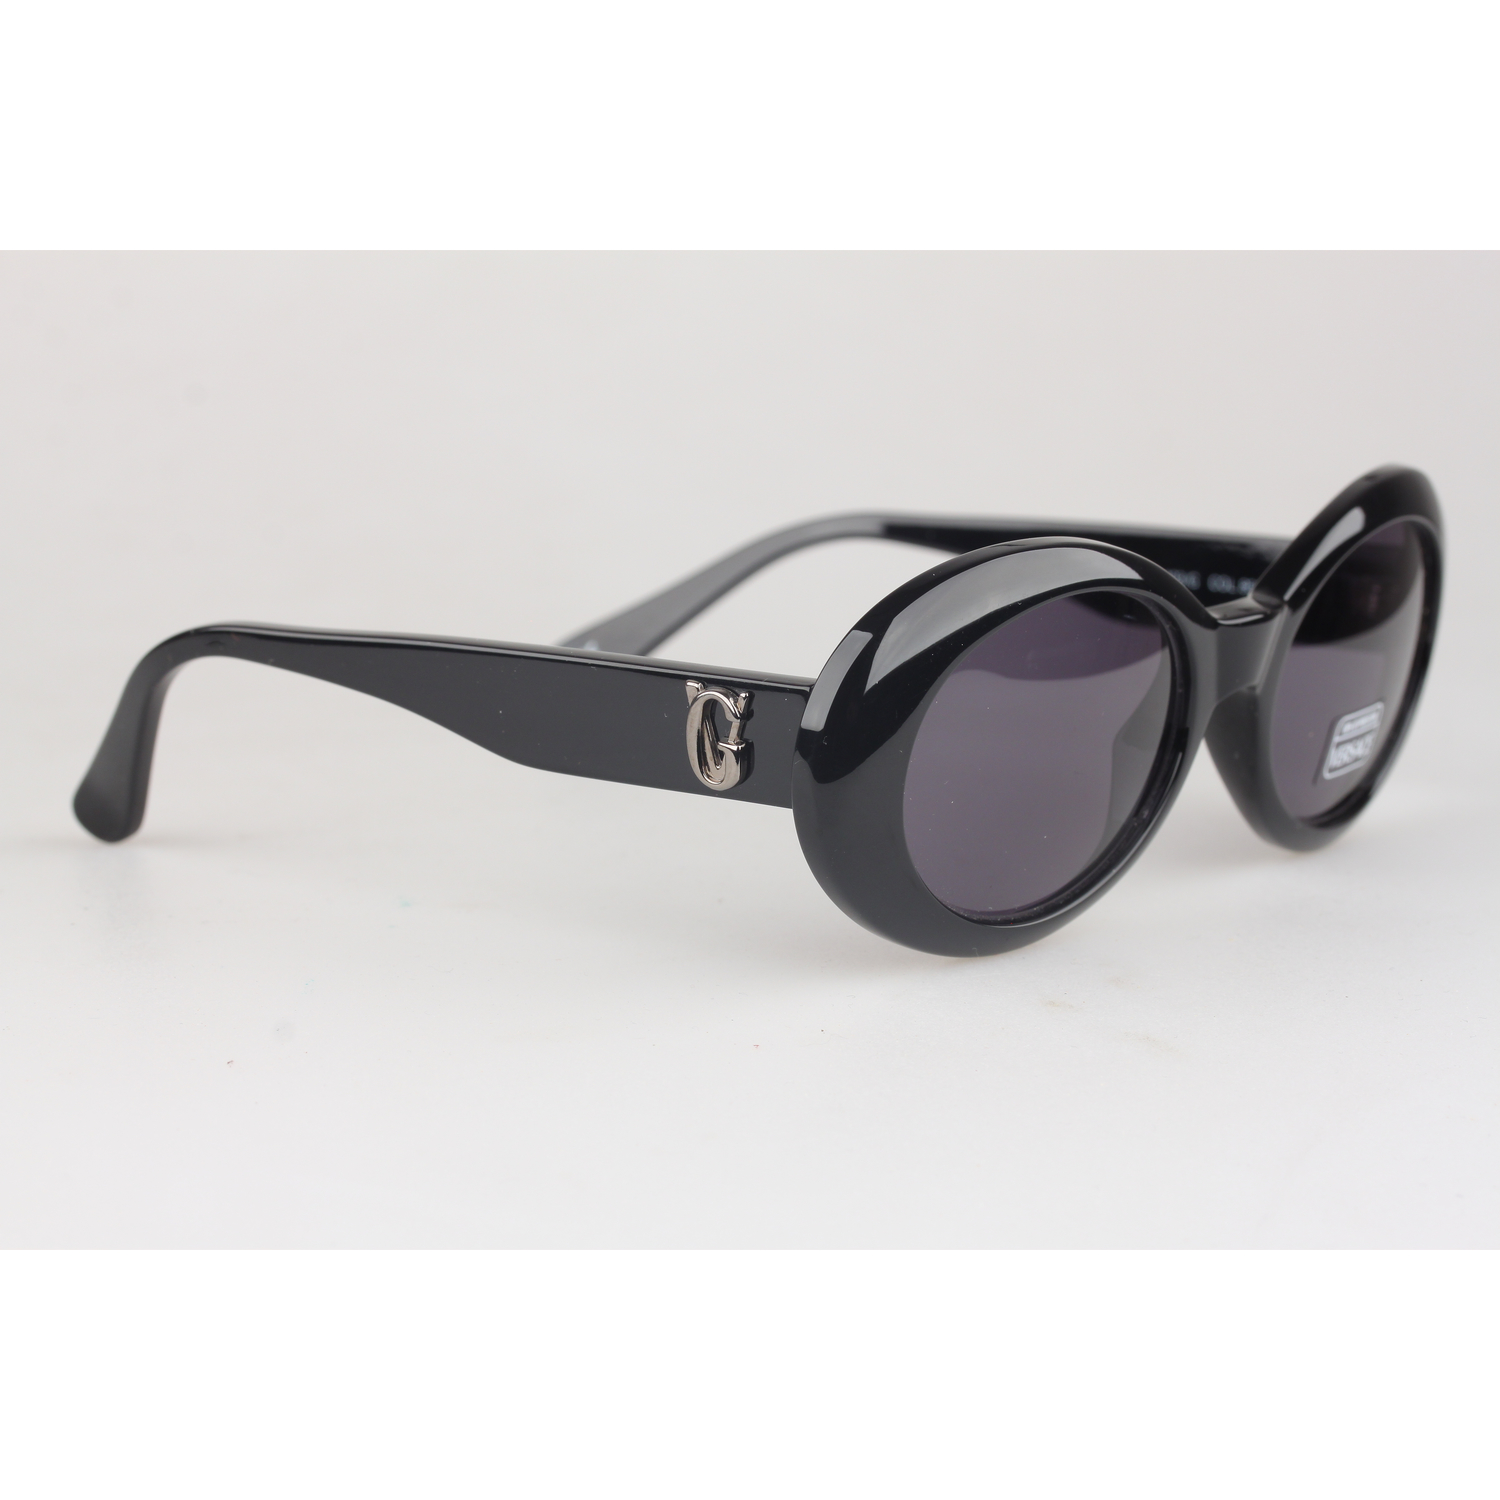 35c50d063138f Authentic Gianni Versace Vintage Black Butterfly Sunglasses 403G New ...